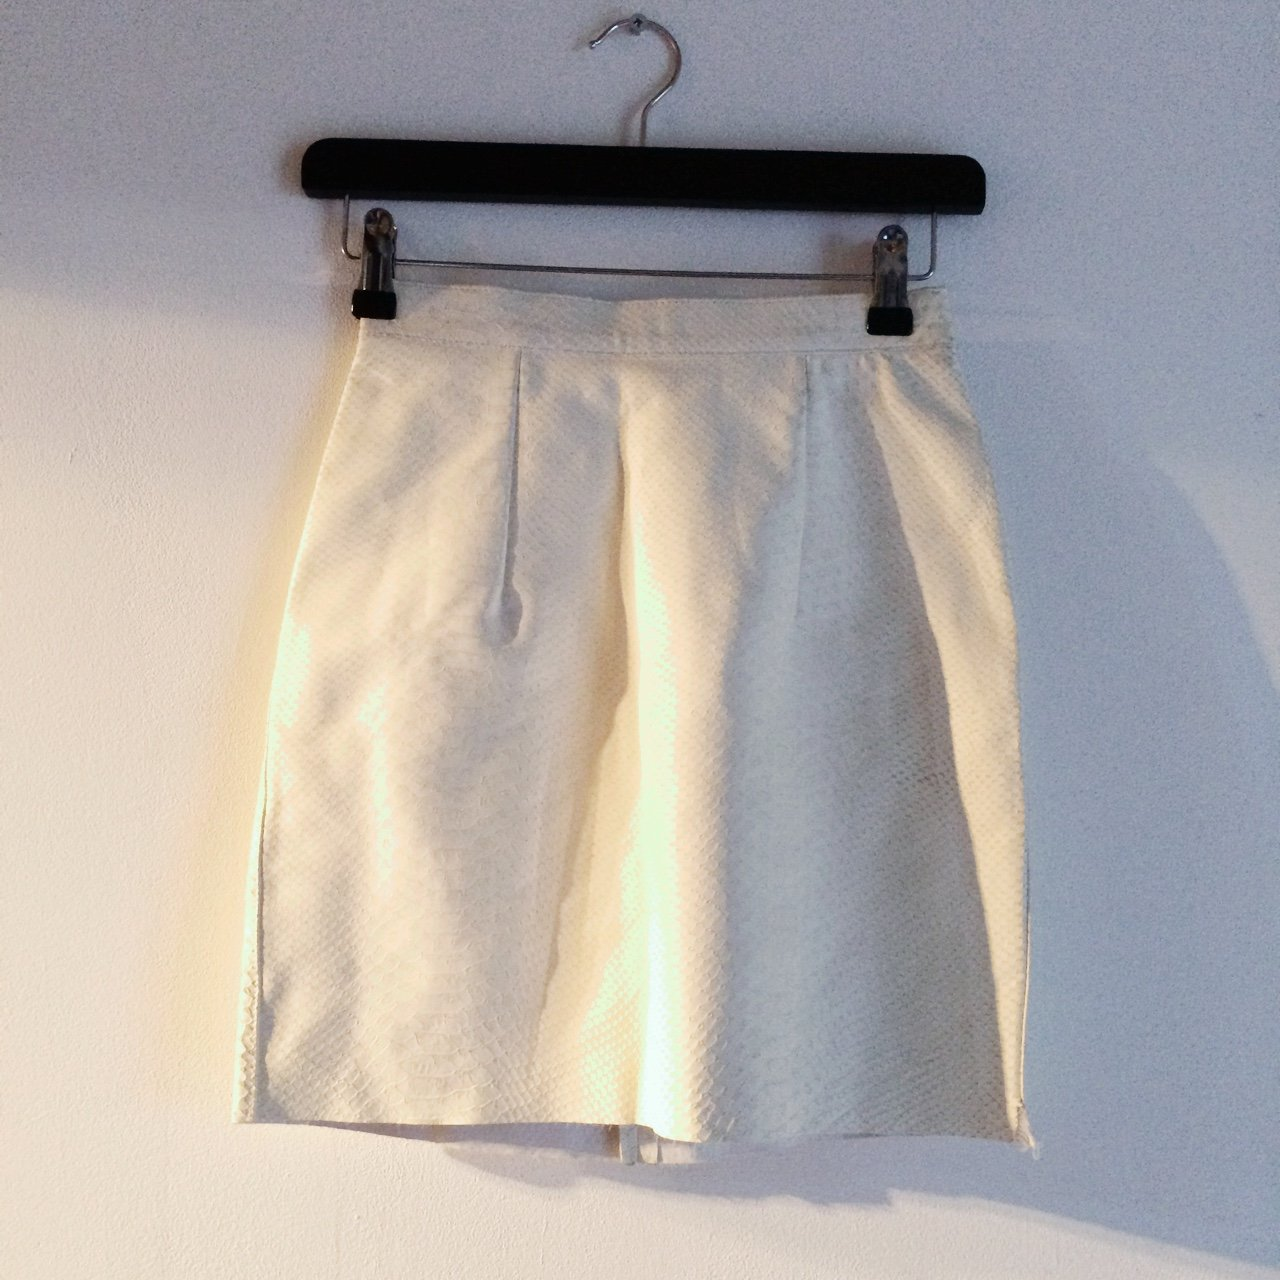 06ff13d257 @hardstyle. 3 years ago. London, UK. American Apparel white snake skin  leather skirt. Genuine leather. Size XS ...